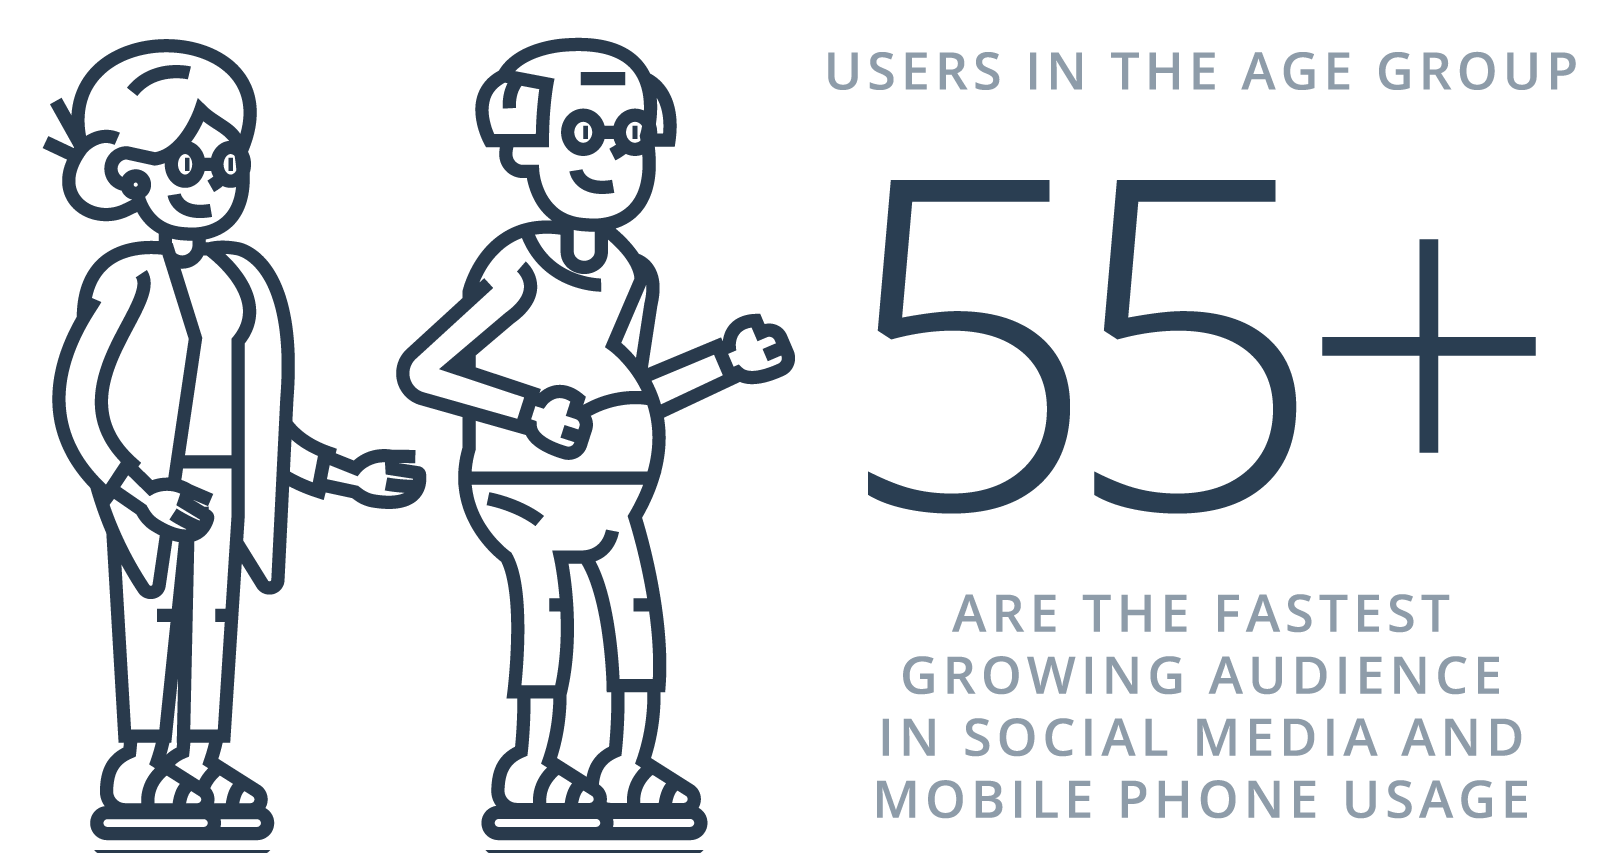 55+ users mobile